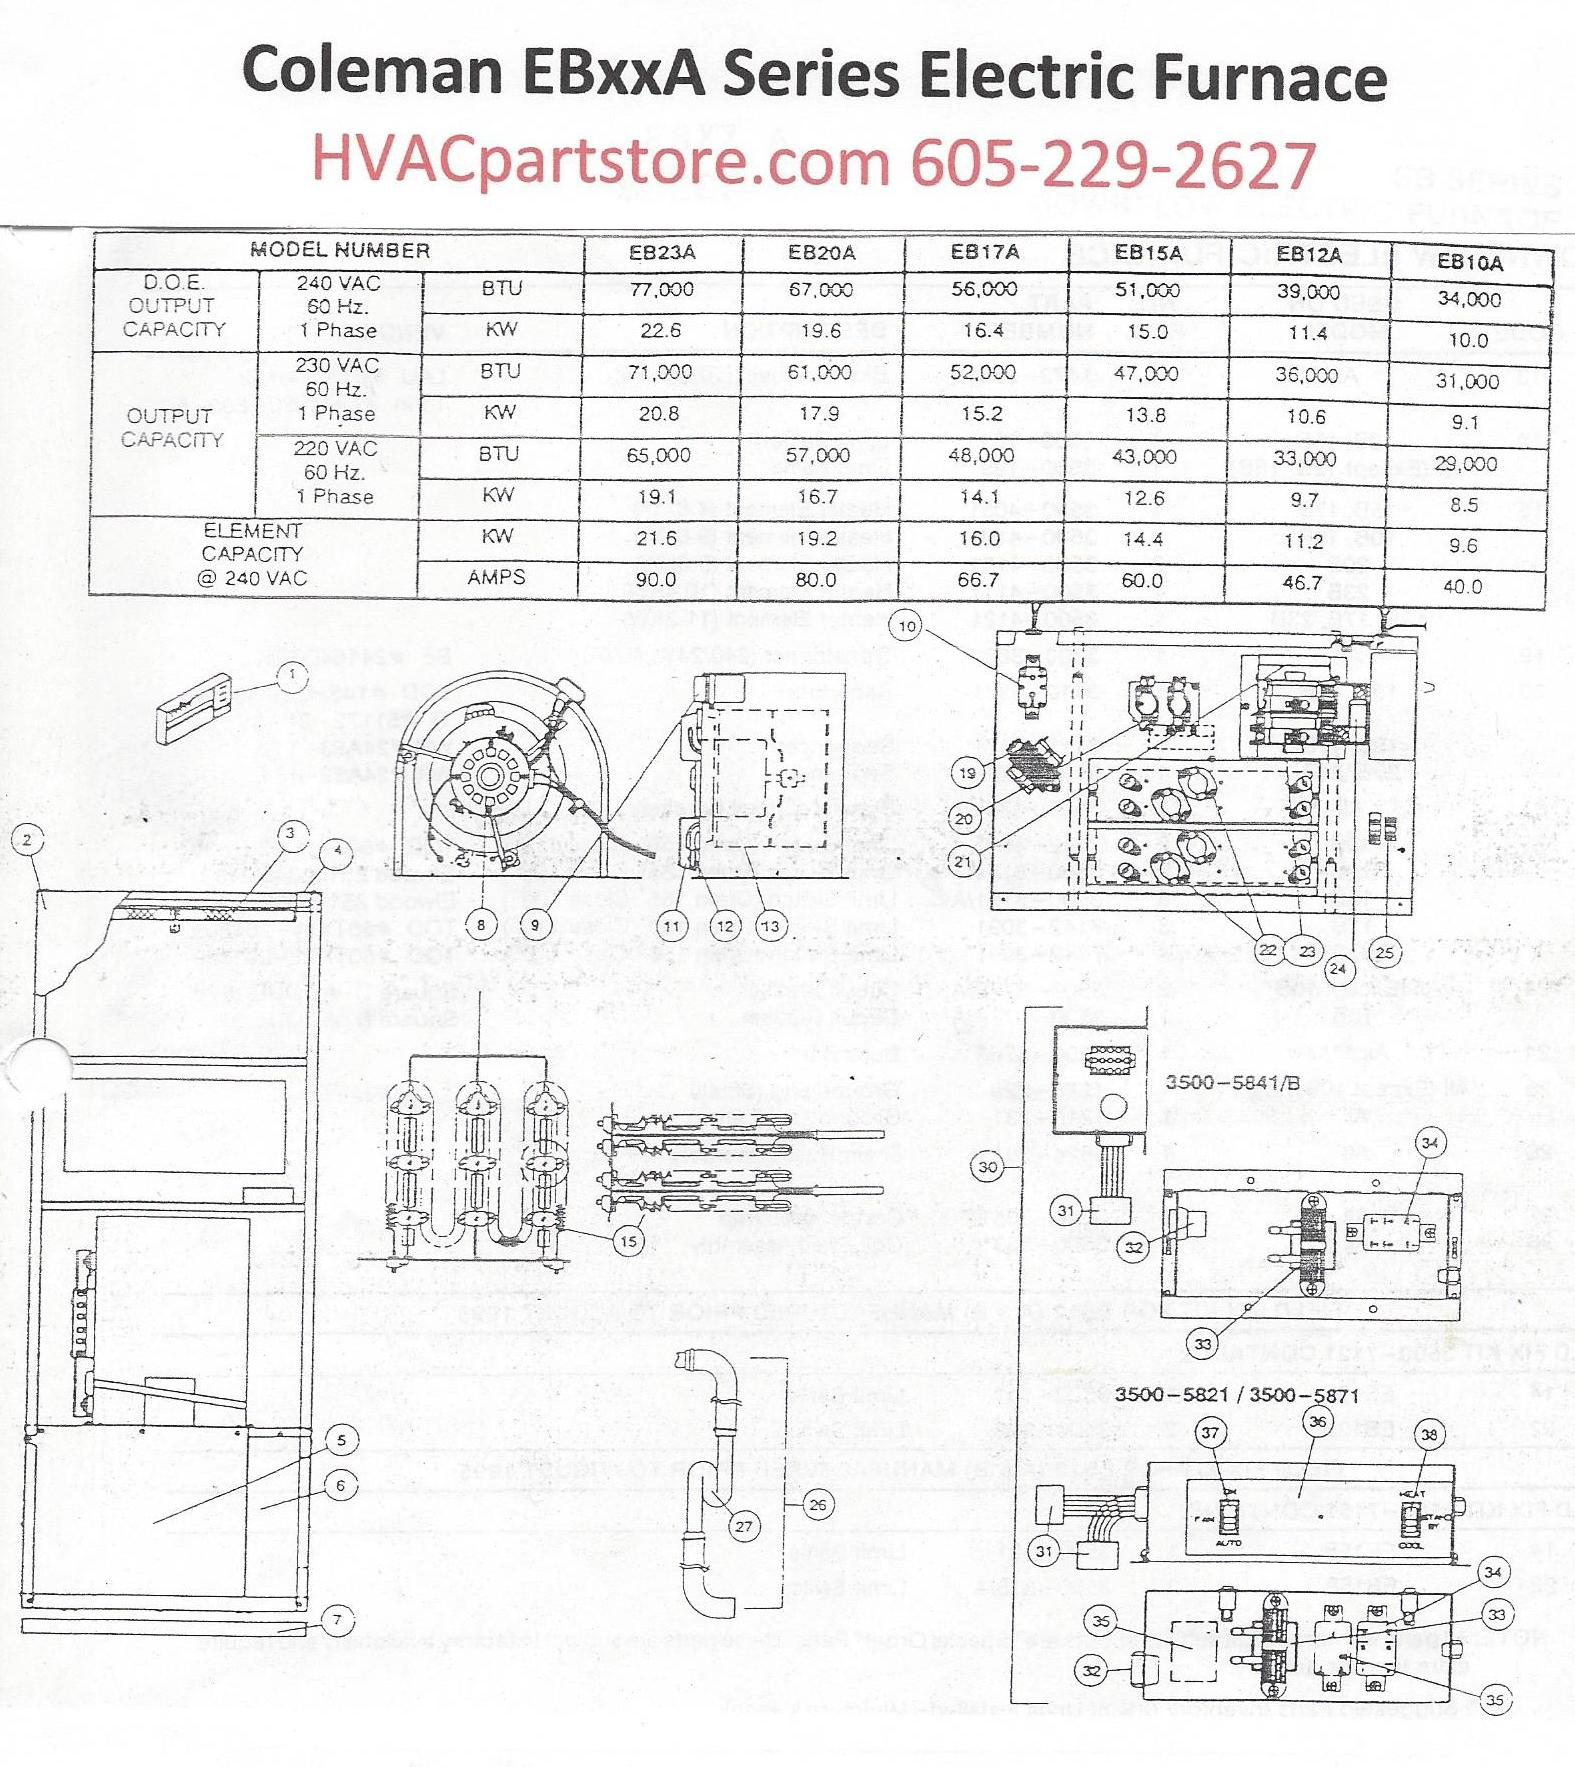 eb12a wiring diagram coleman evcon today diagram database  coleman electric furnace diagram #11